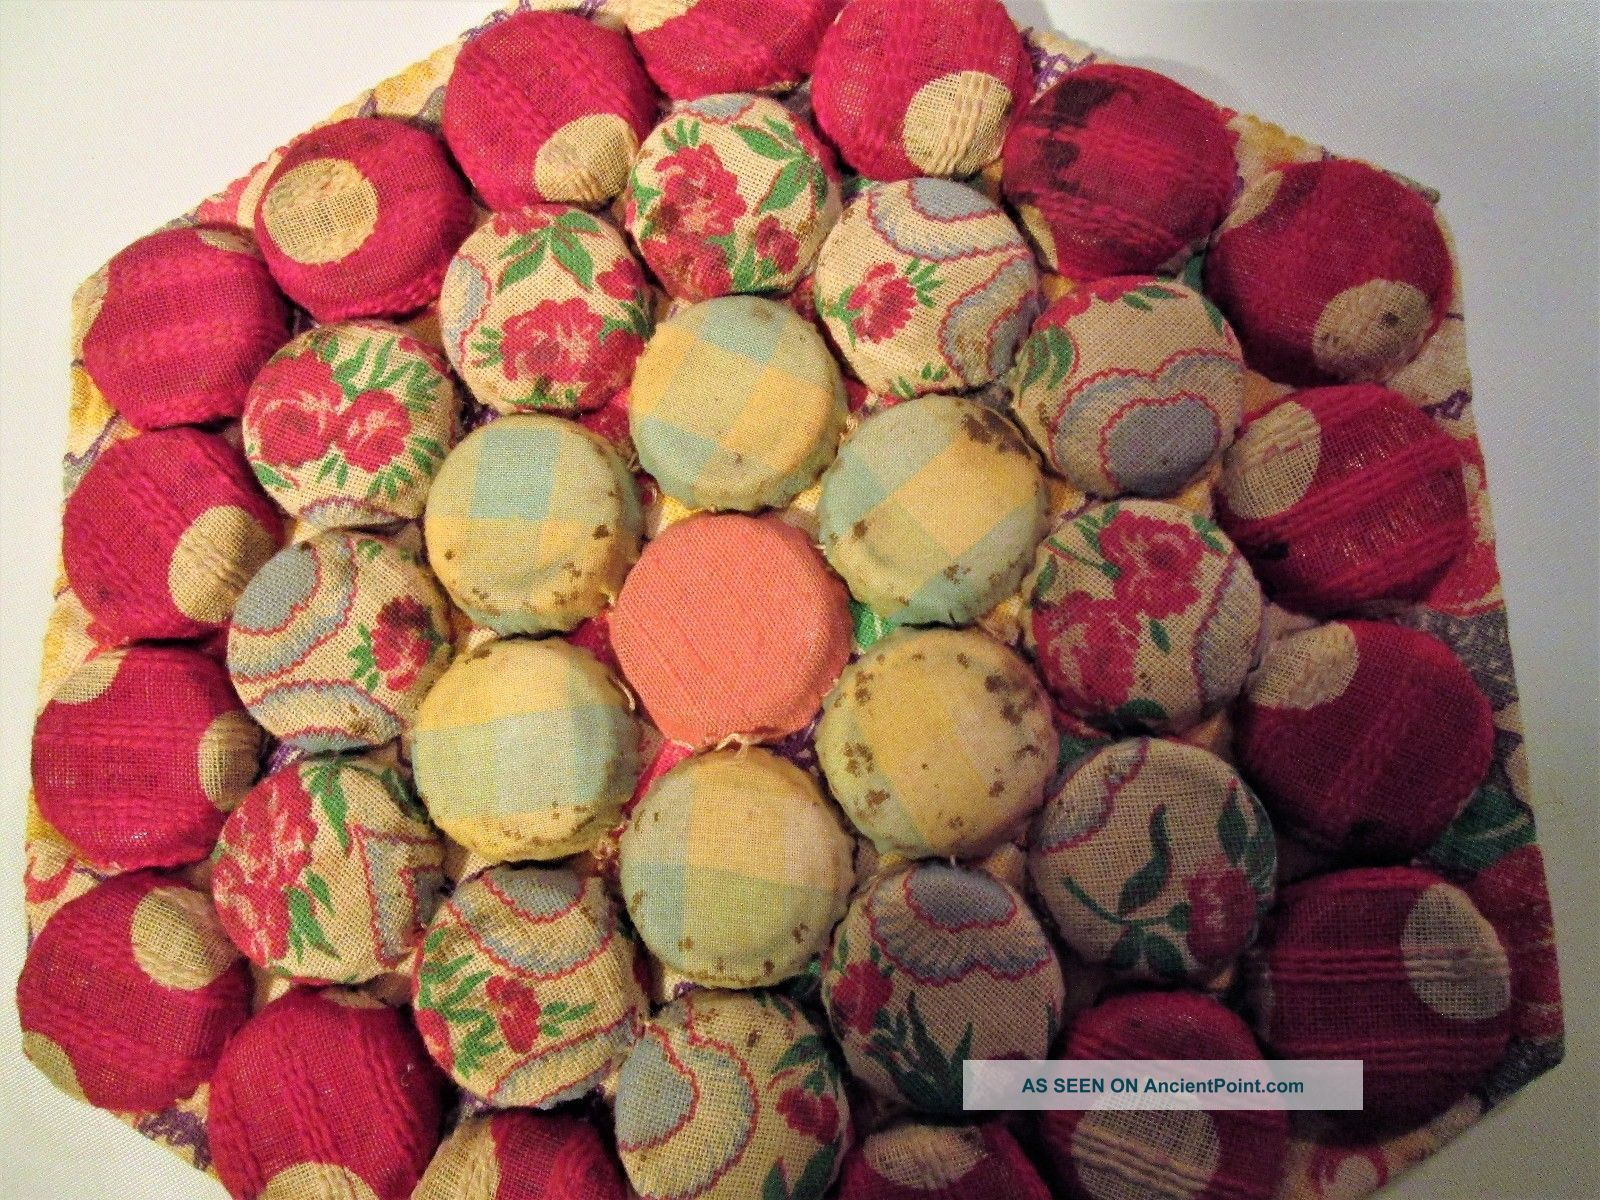 Handsewn Bottlecap Colorful Trivet Trivets photo